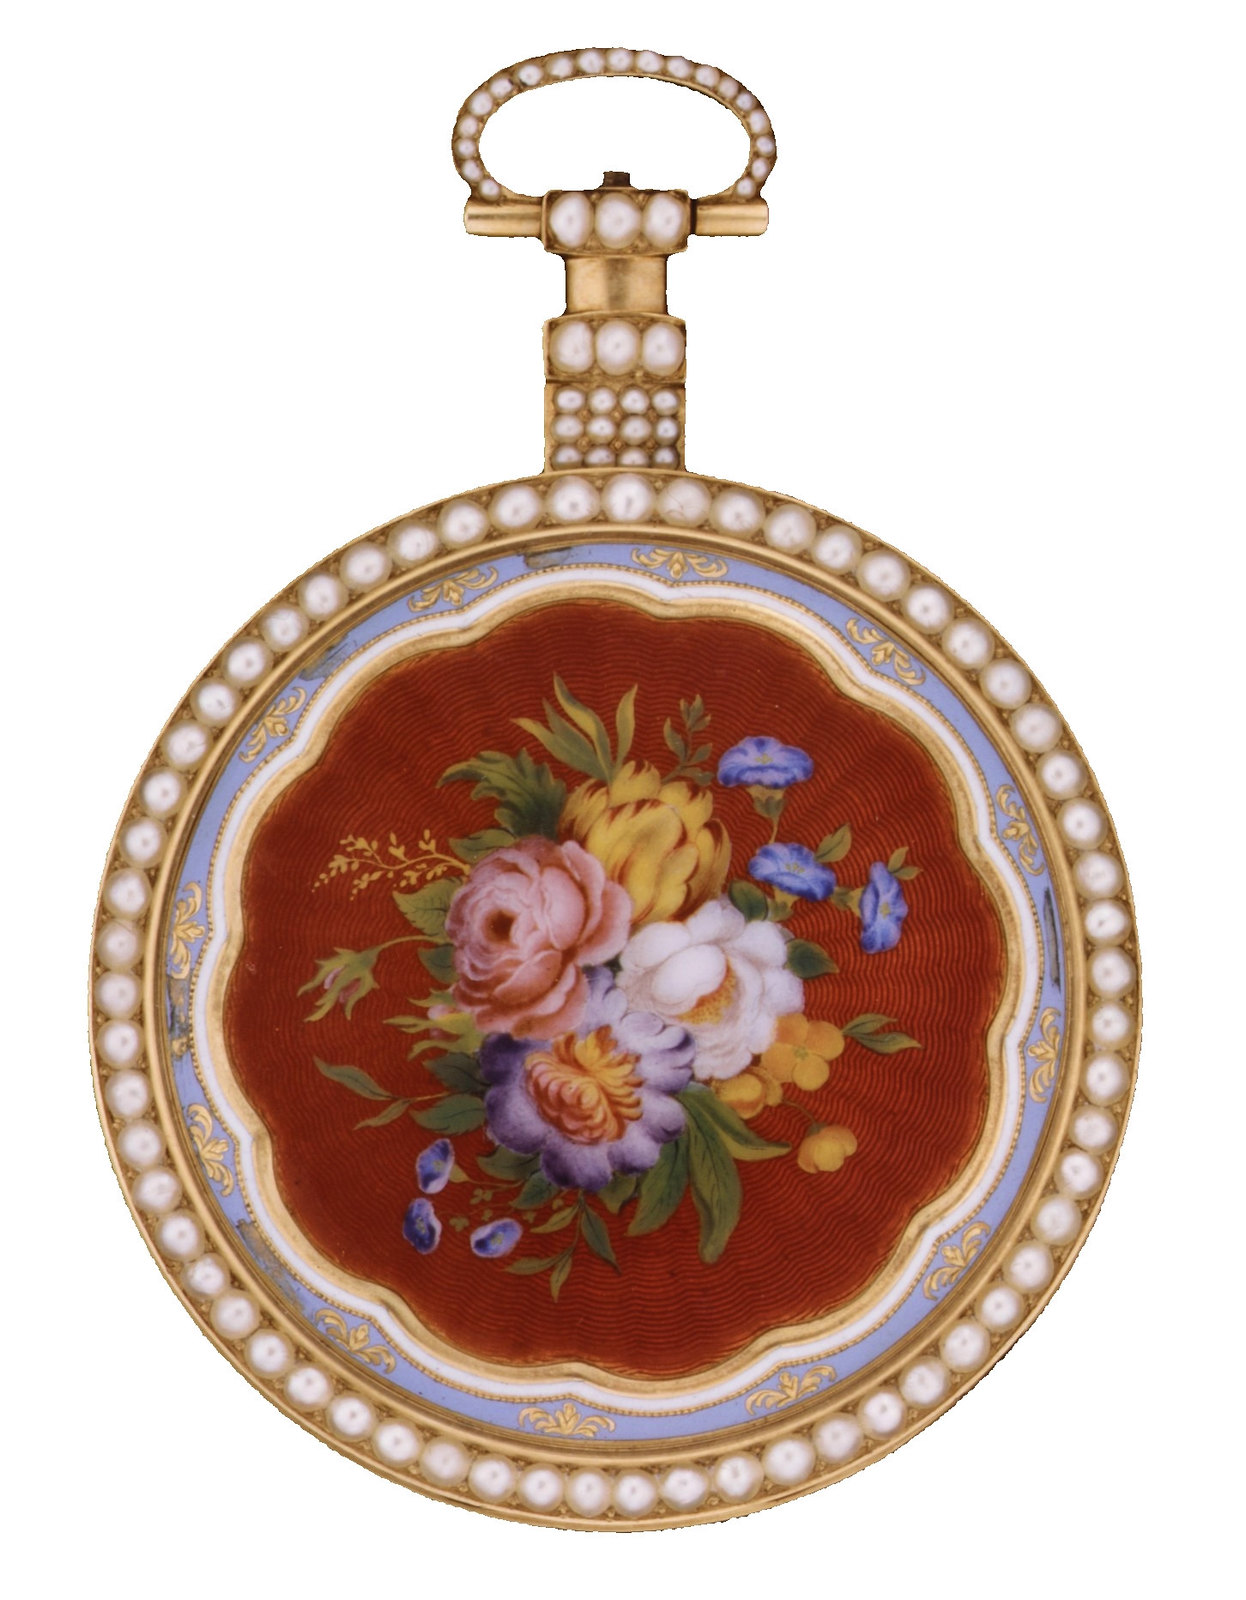 1819. Watch. British, London. Case of gold, enamel, and pearls, with floral design; jeweled movement, with ruby cylinder escapement. metmuseum